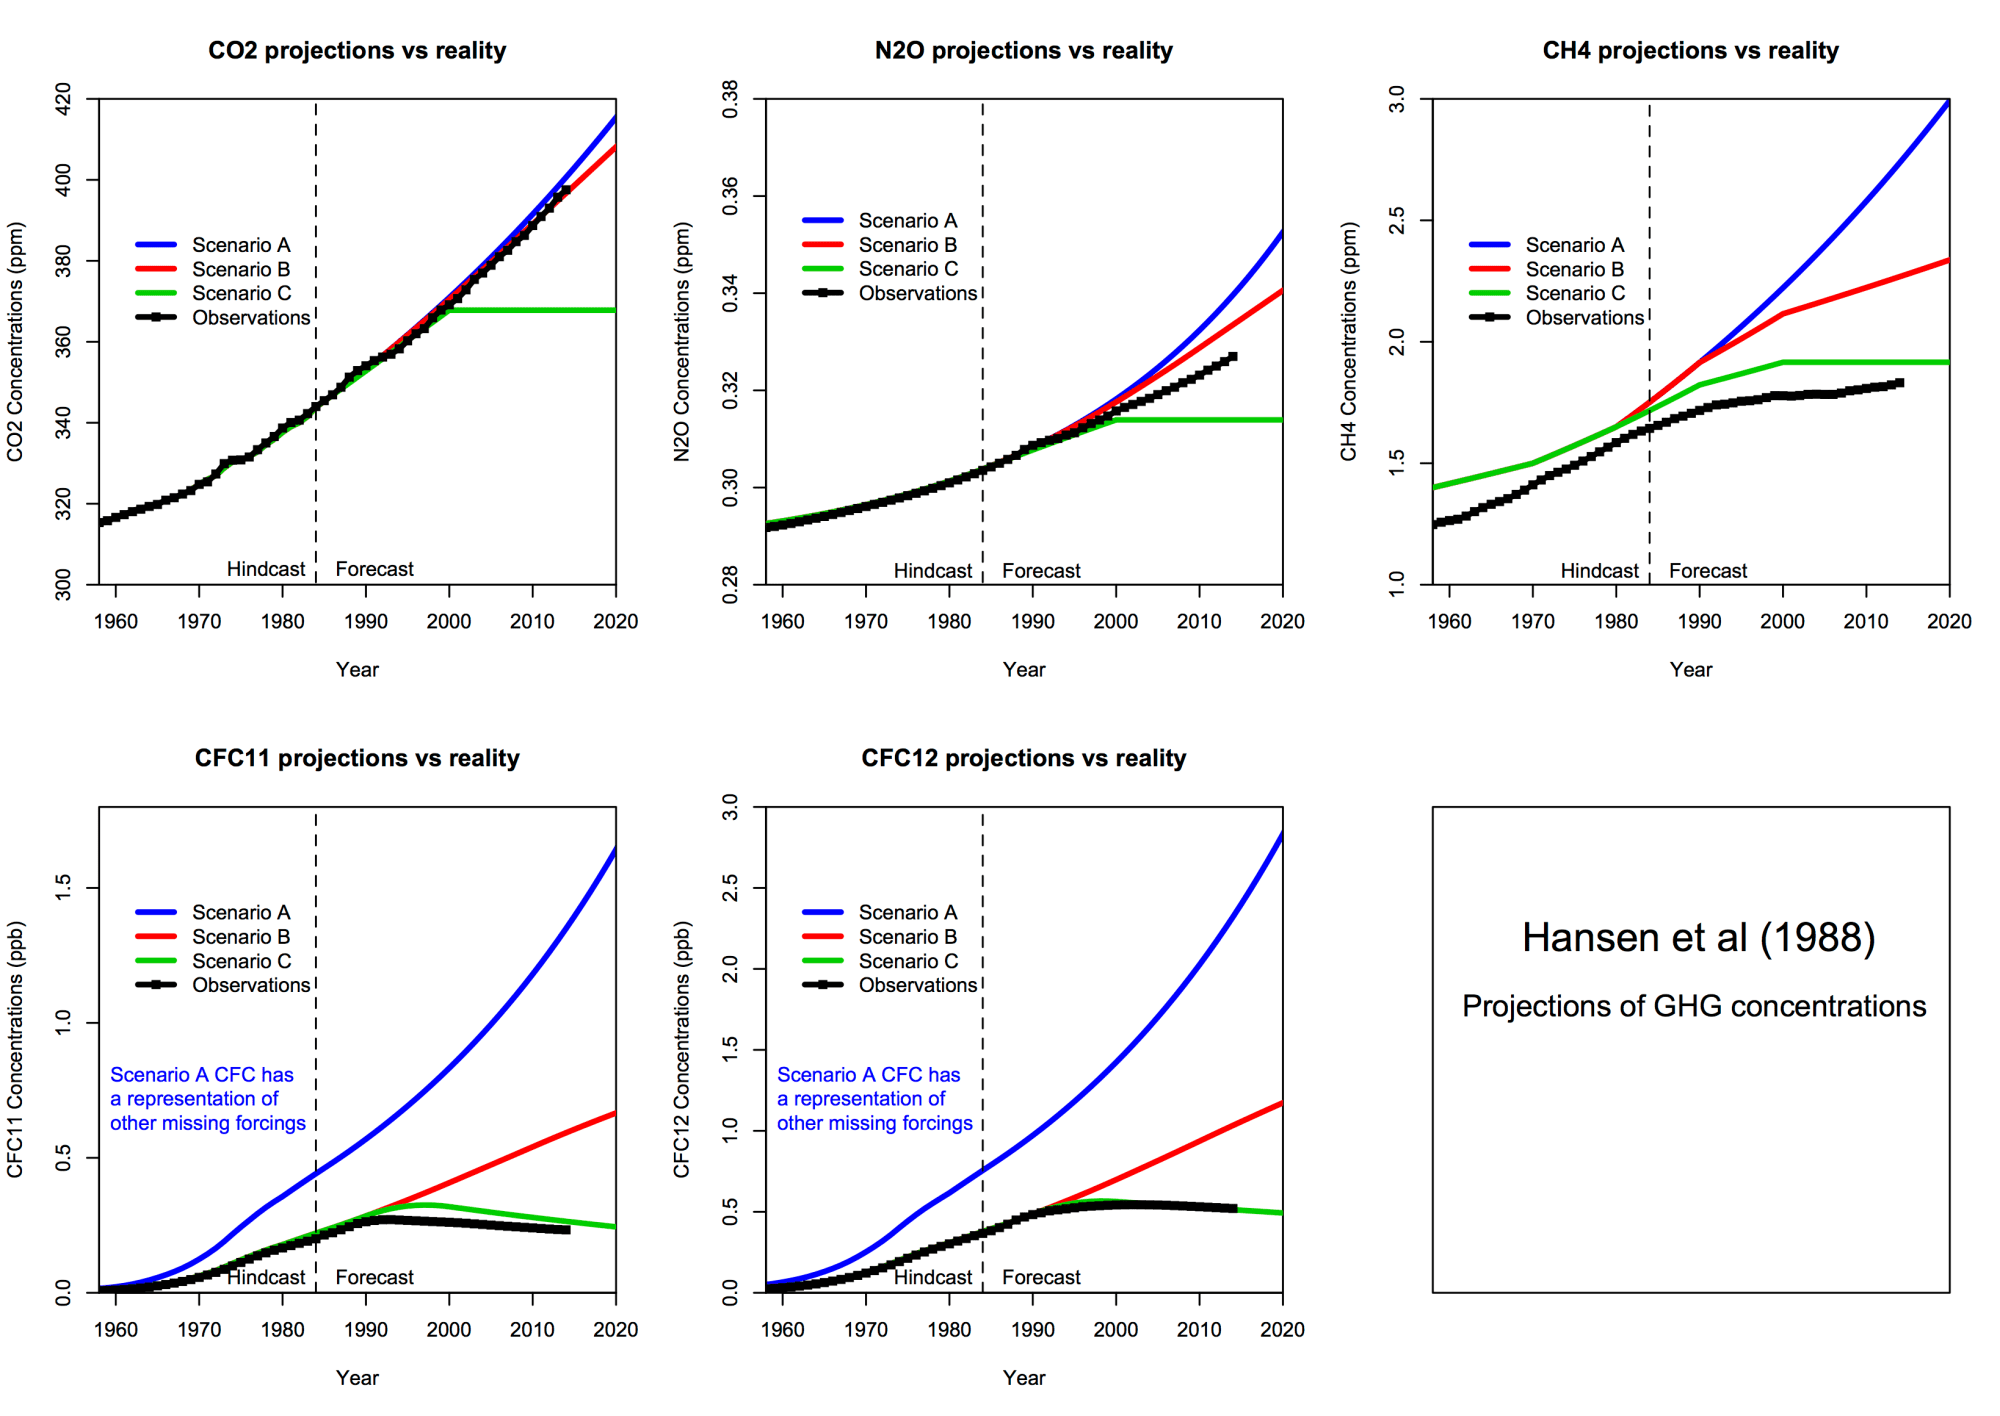 hight resolution of estimates of co2 growth in scenarios a and b were quite good but estimates of n2o and ch4 overshot what happened estimates of global ch4 have been